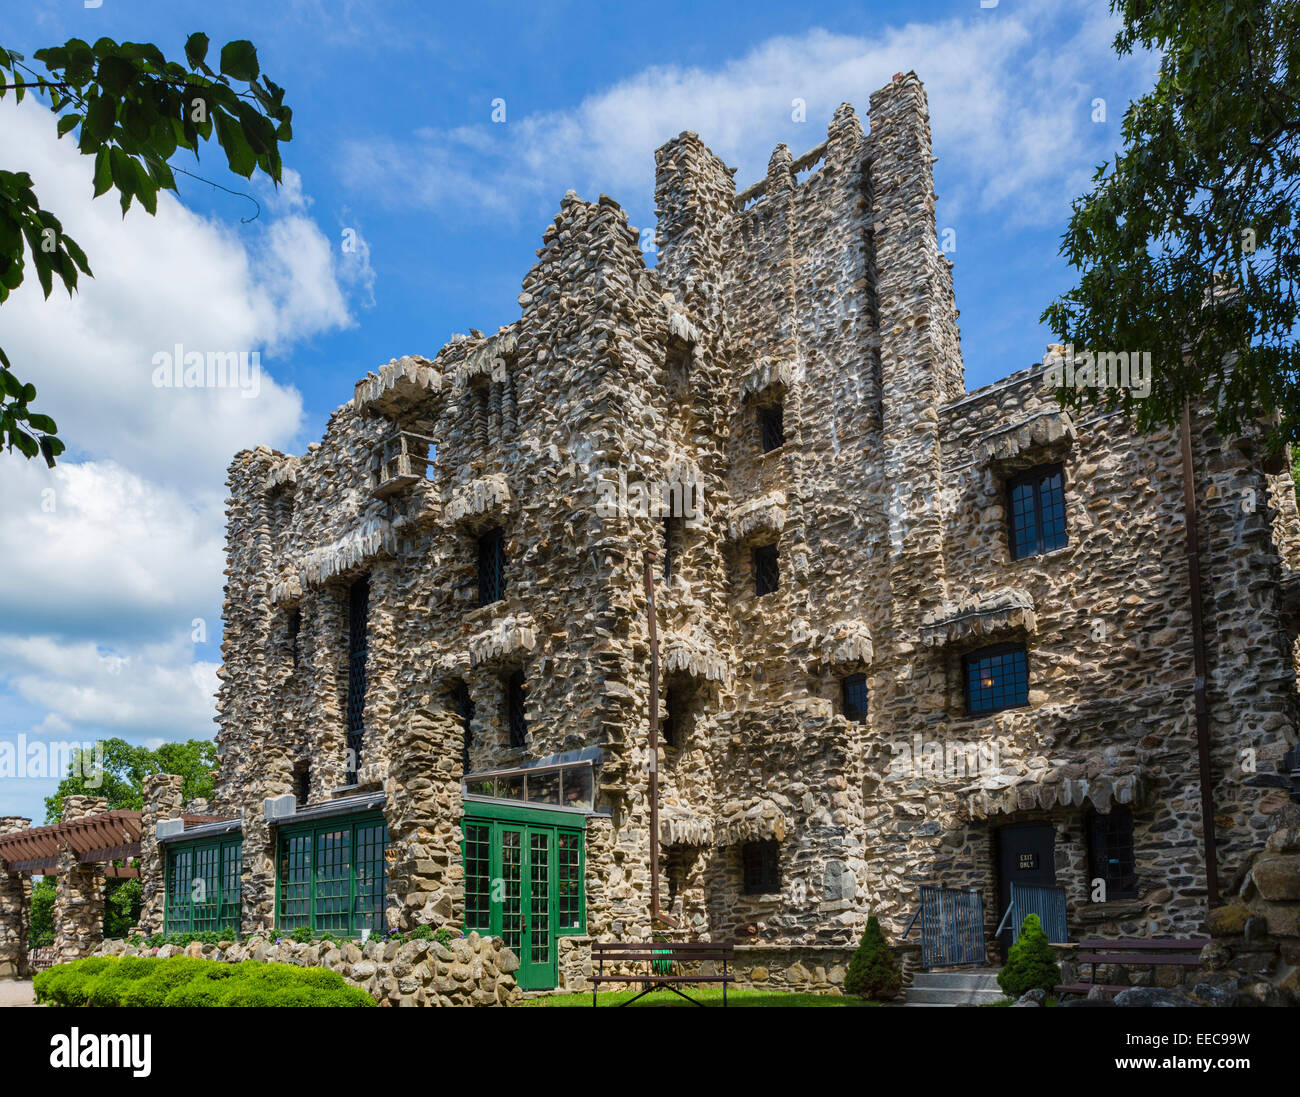 Gillette Castle, former home of the actor William Gillette, Gillette Castle State Park, East Haddam, Connecticut, - Stock Image